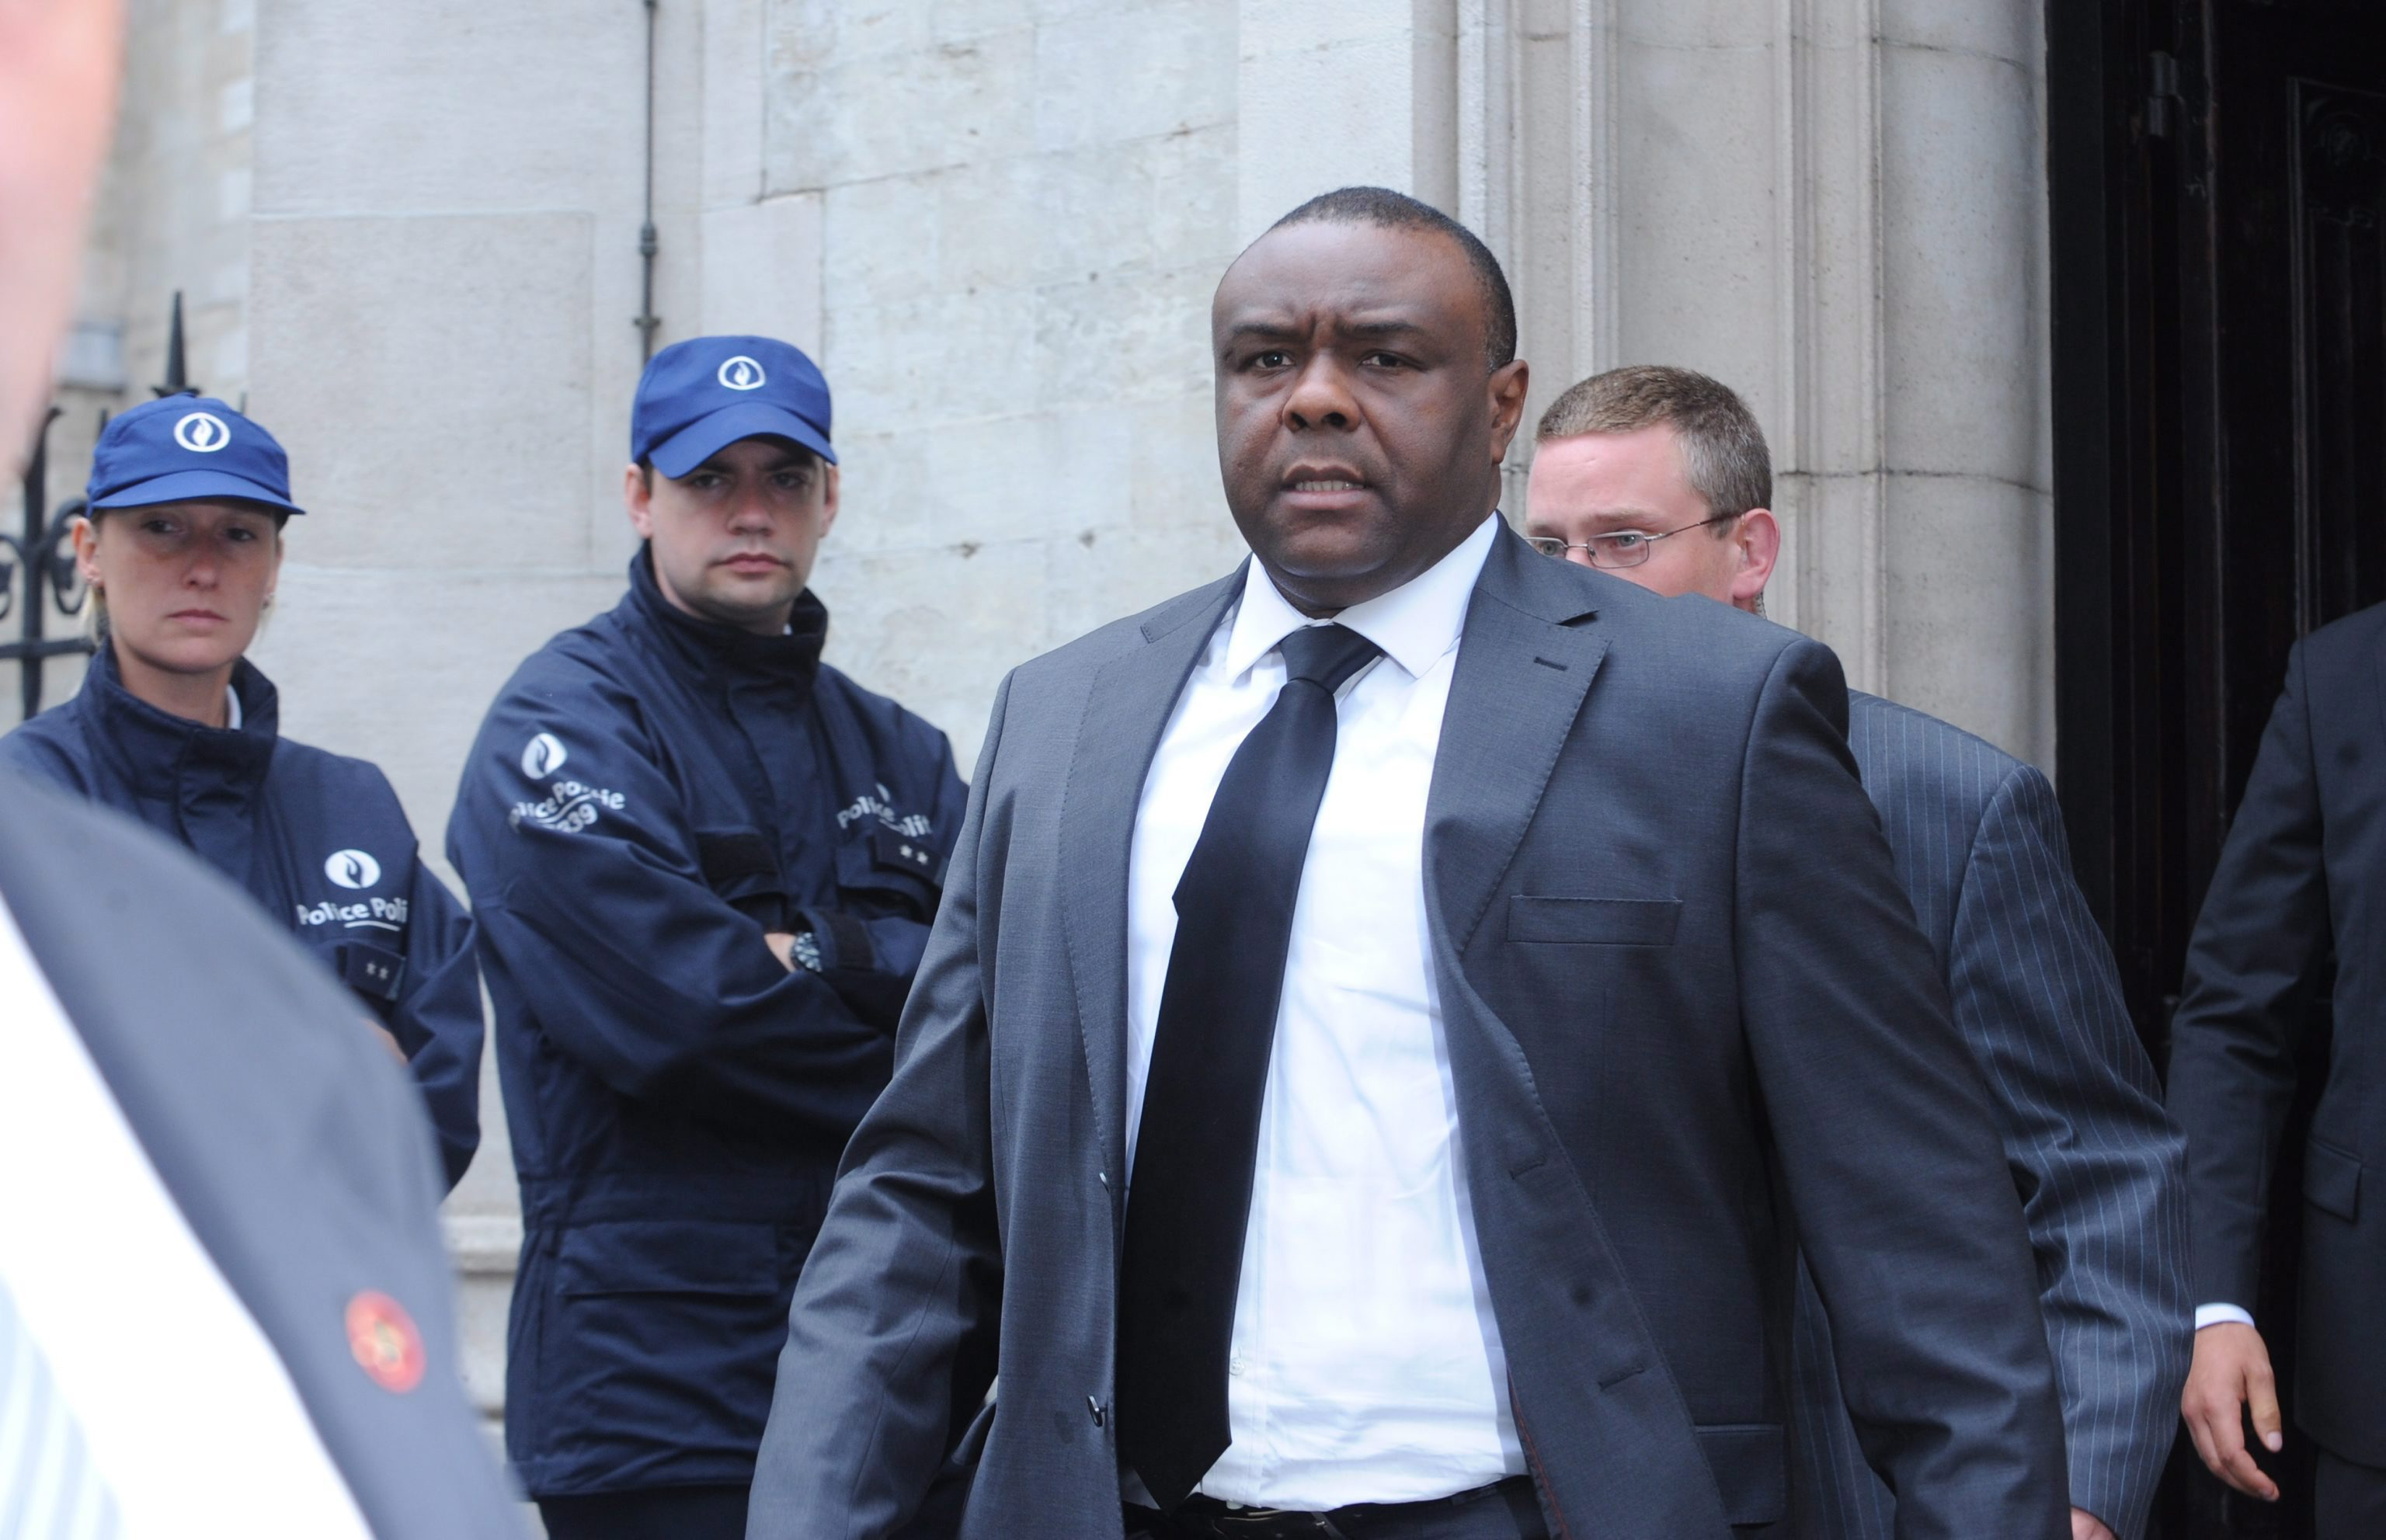 Congolese politician Jean-Pierre Bemba leaving the church after his father's funeral service.